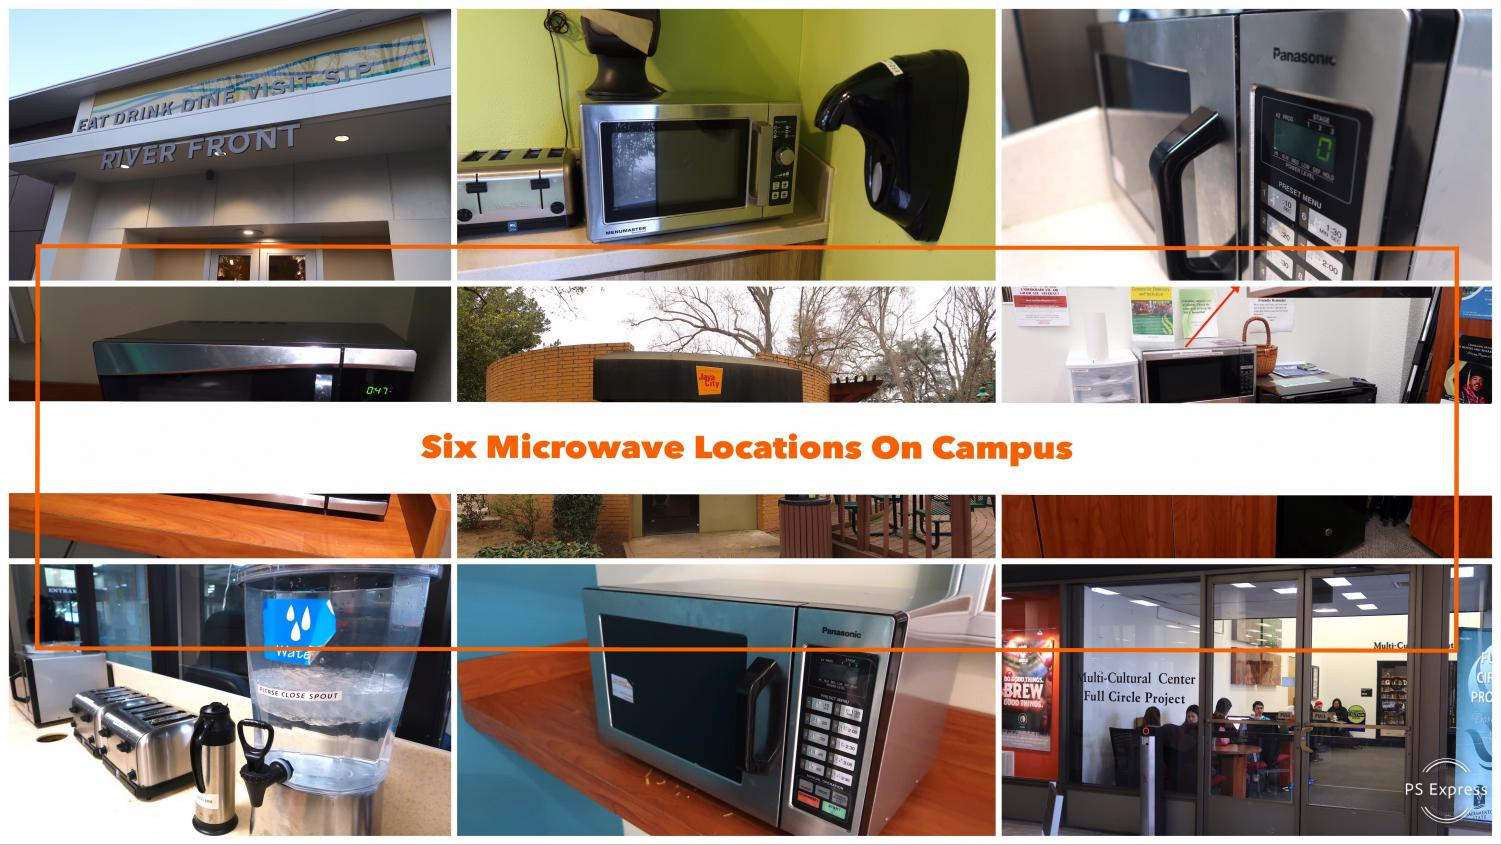 Six convenient microwave locations on campus. Collage made with Premiere Pro photoshop.